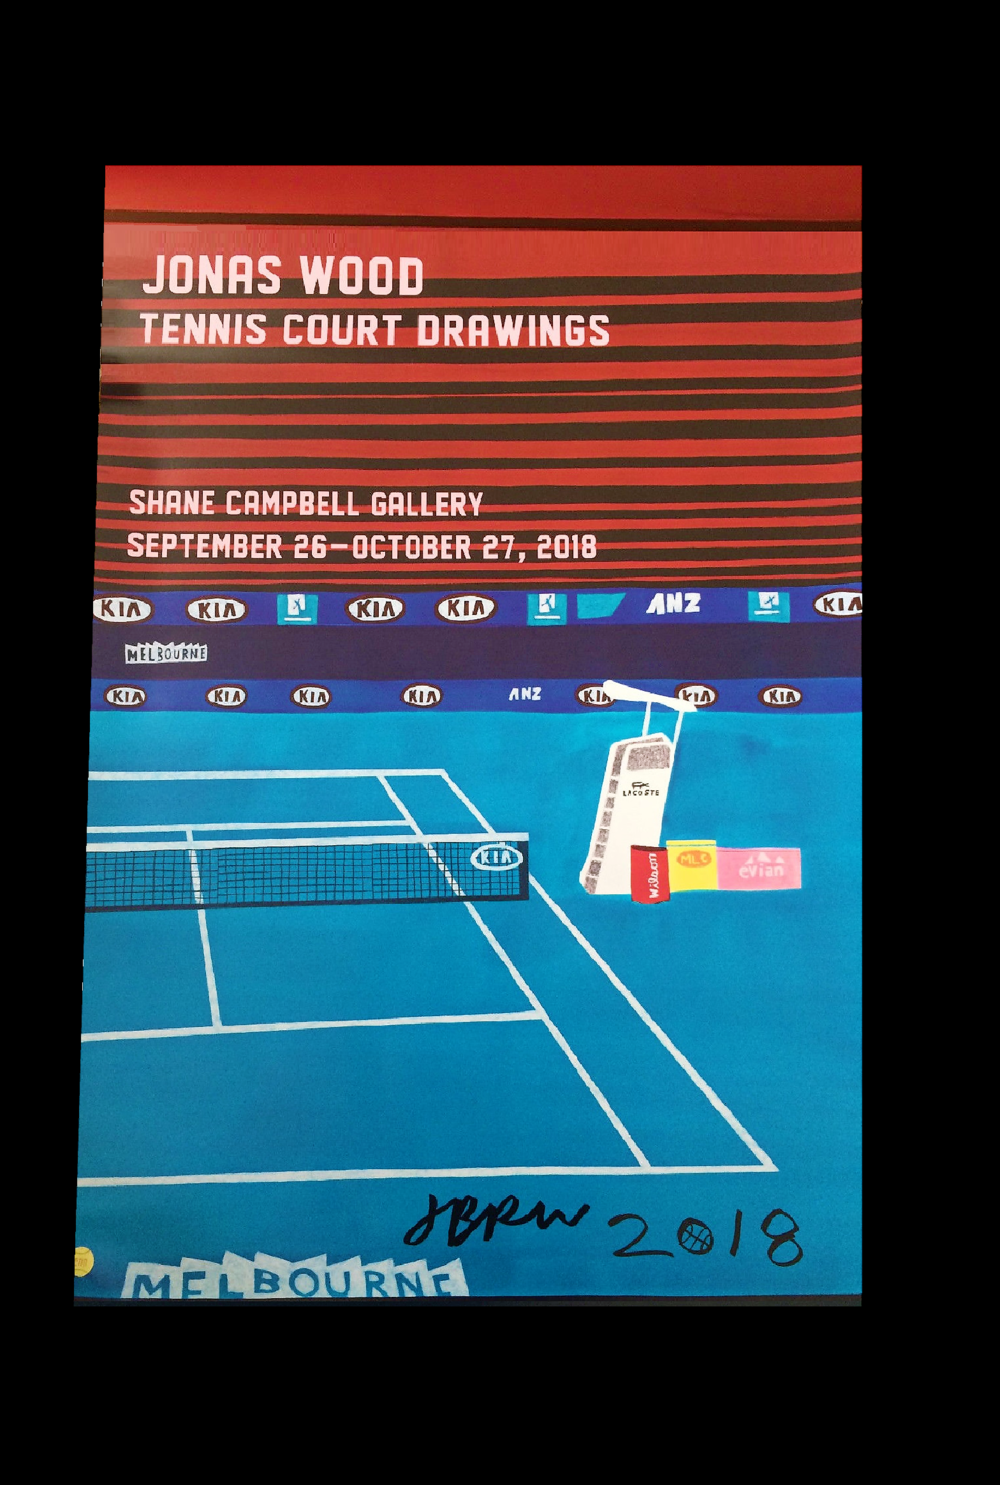 """Tennis Court Drawings"",  2018, Shane Campbell Gallery exhibition show poster, SIGNED, 36 × 24 in."